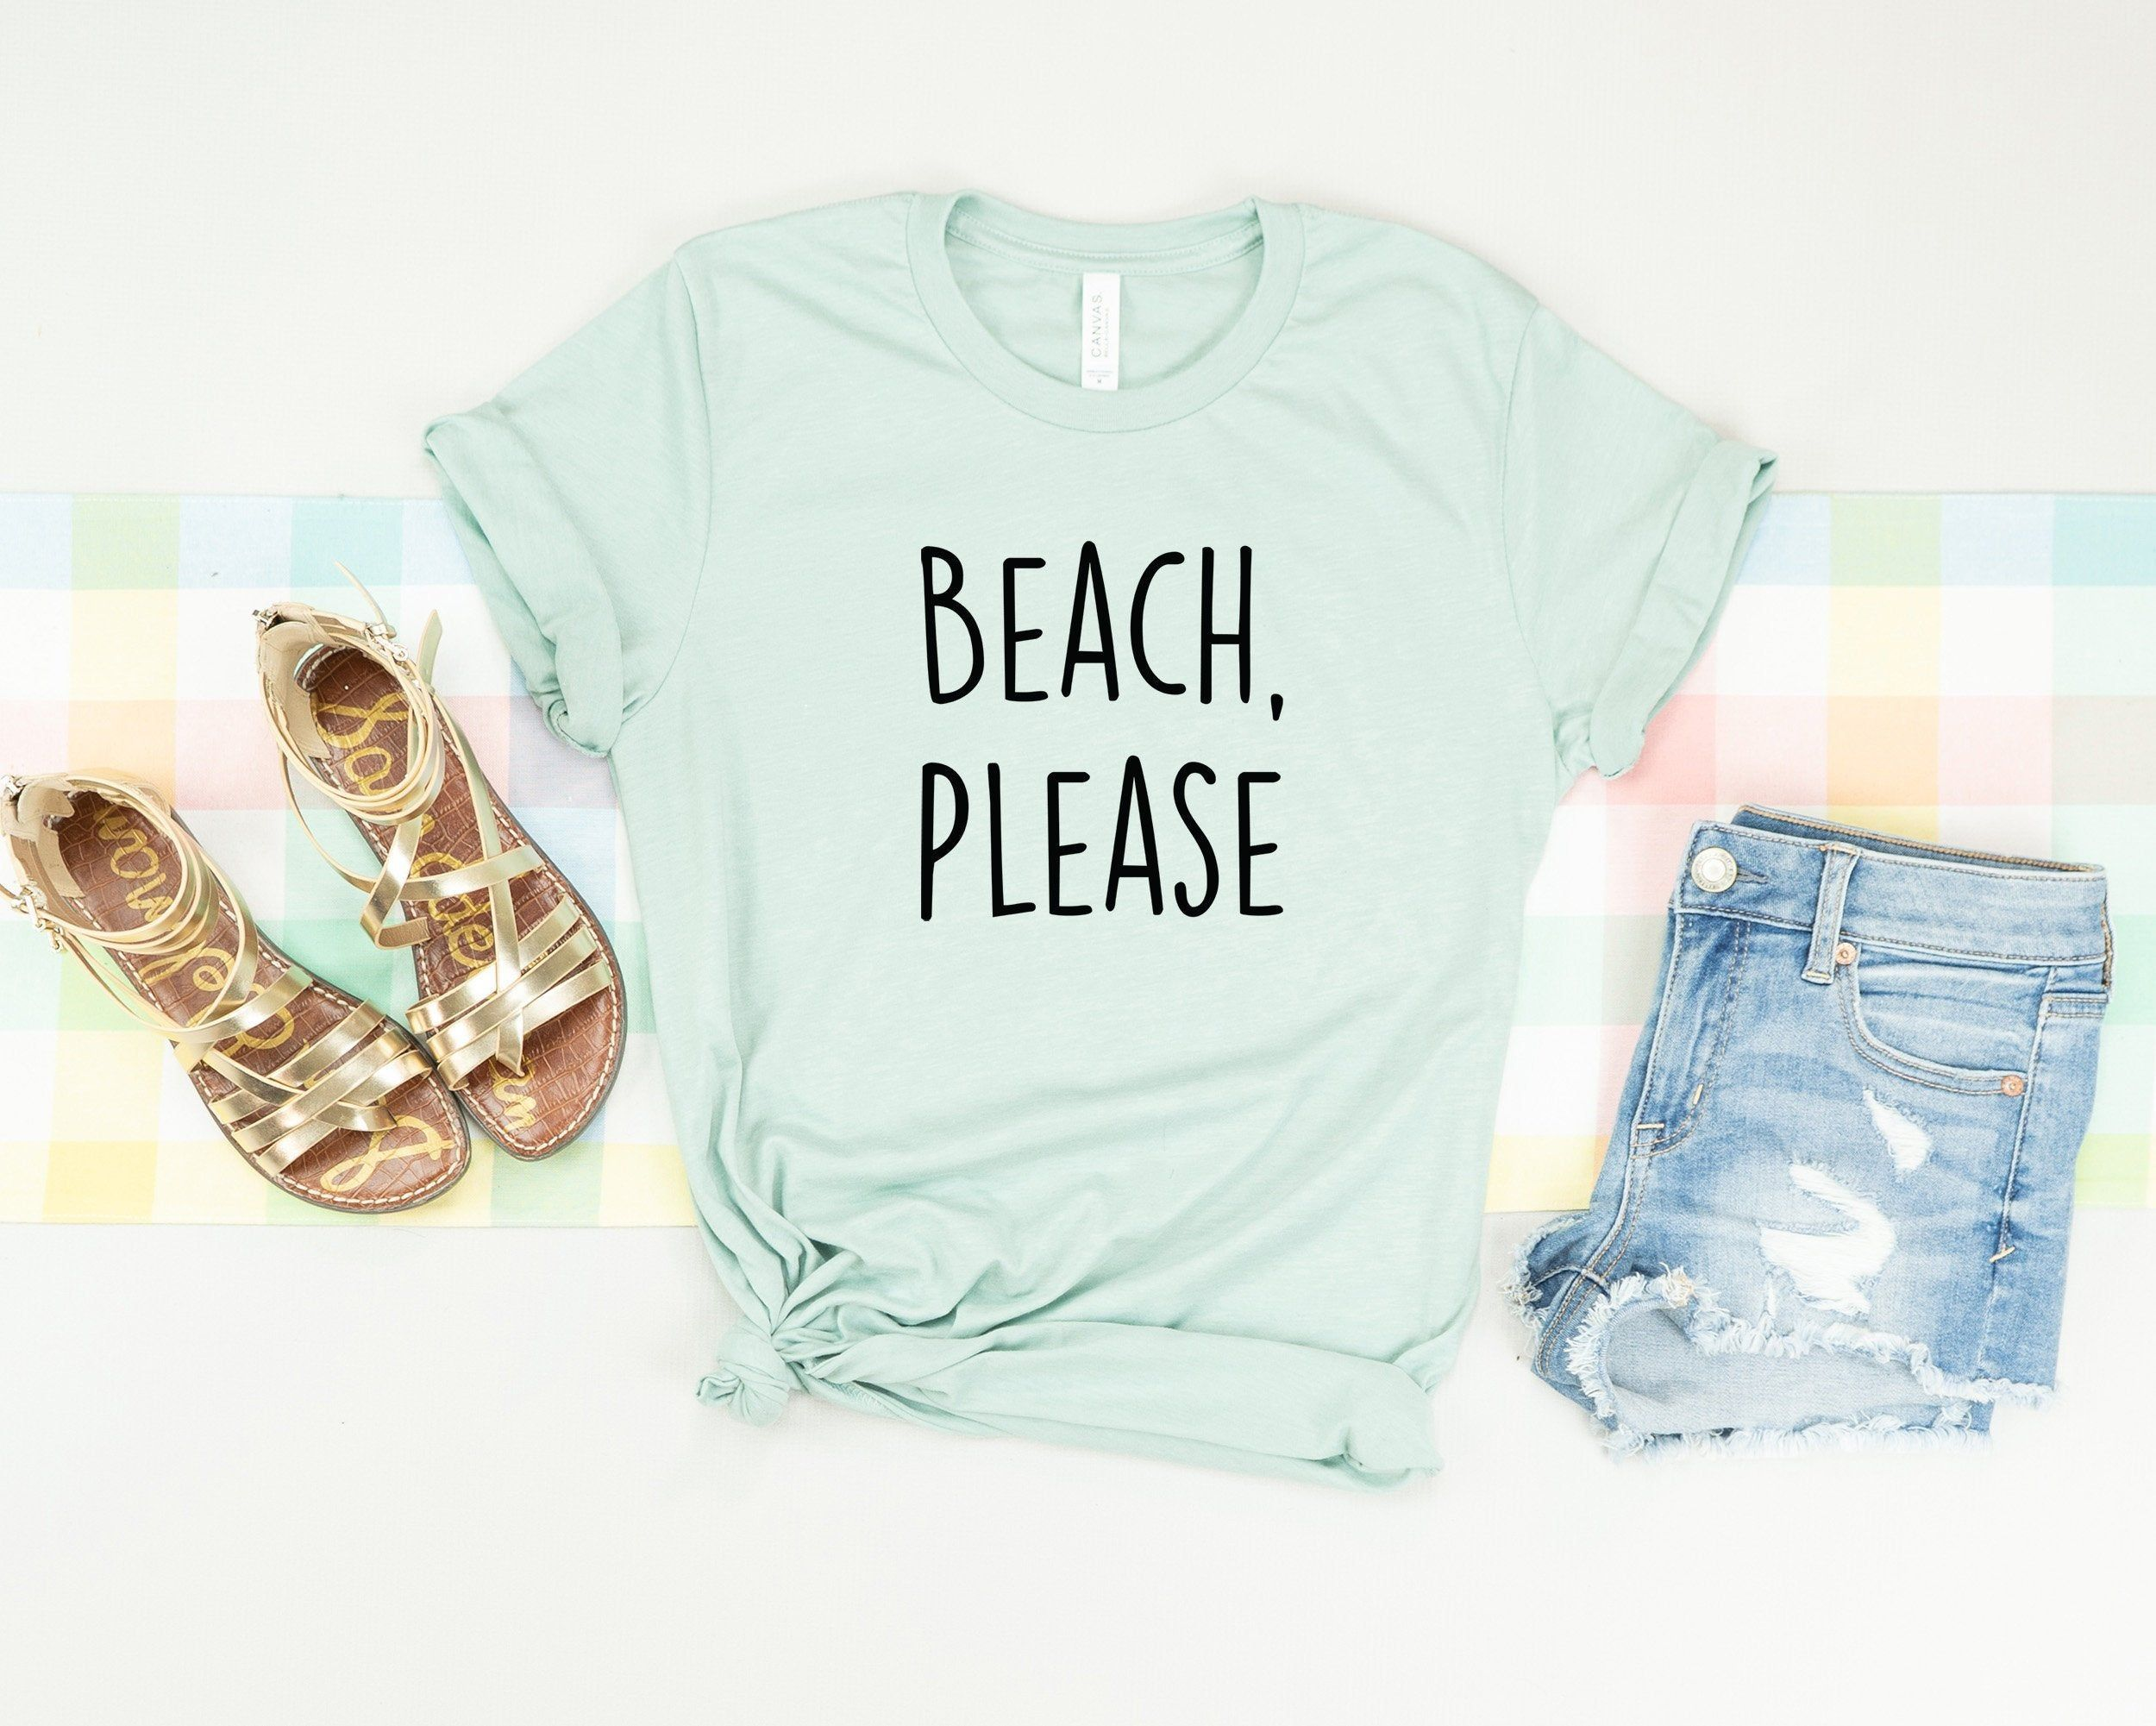 Beach Please, vacation, vacation shirts, Mexico vacation shirt, beach vacation tank, shady beach, beach cover, vacation mode, honeymoon #beachhoneymoonclothes Beach Please, vacation, vacation shirts, Mexico vacation shirt, beach vacation tank, shady beach, beach cover, vacation mode, honeymoon #beachhoneymoonclothes